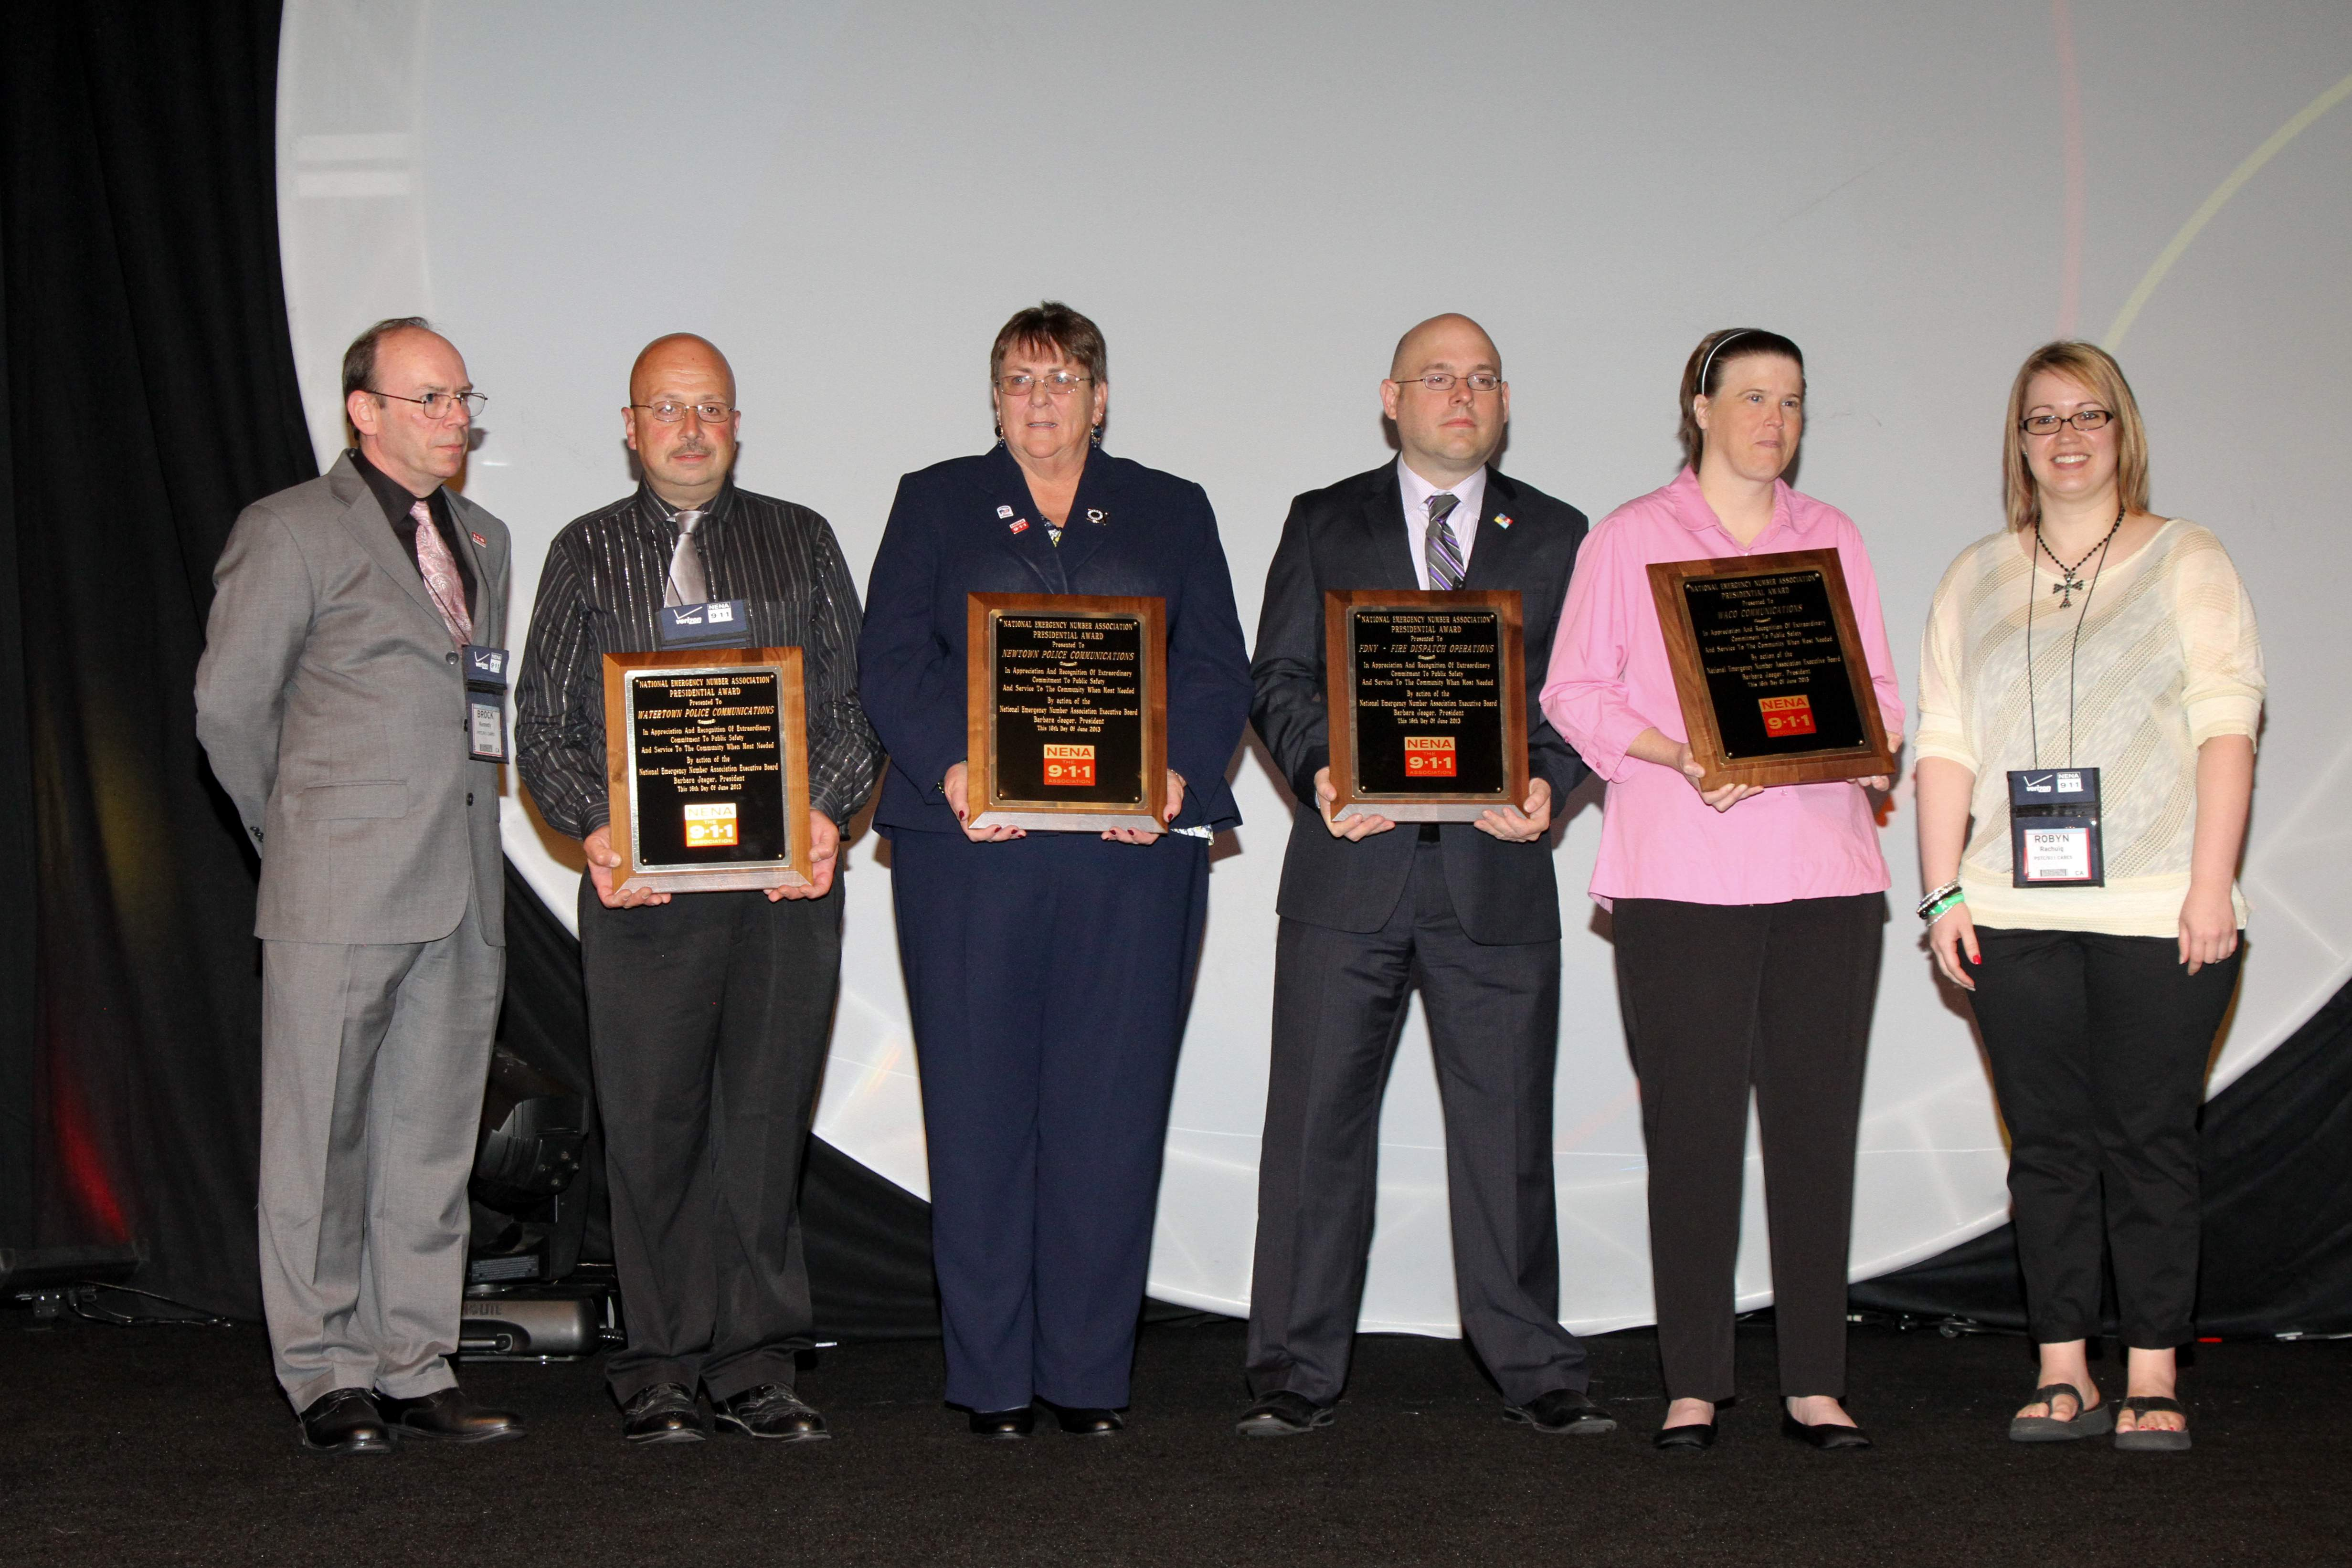 Calm And Professional' Dispatchers Honored   The Newtown Bee